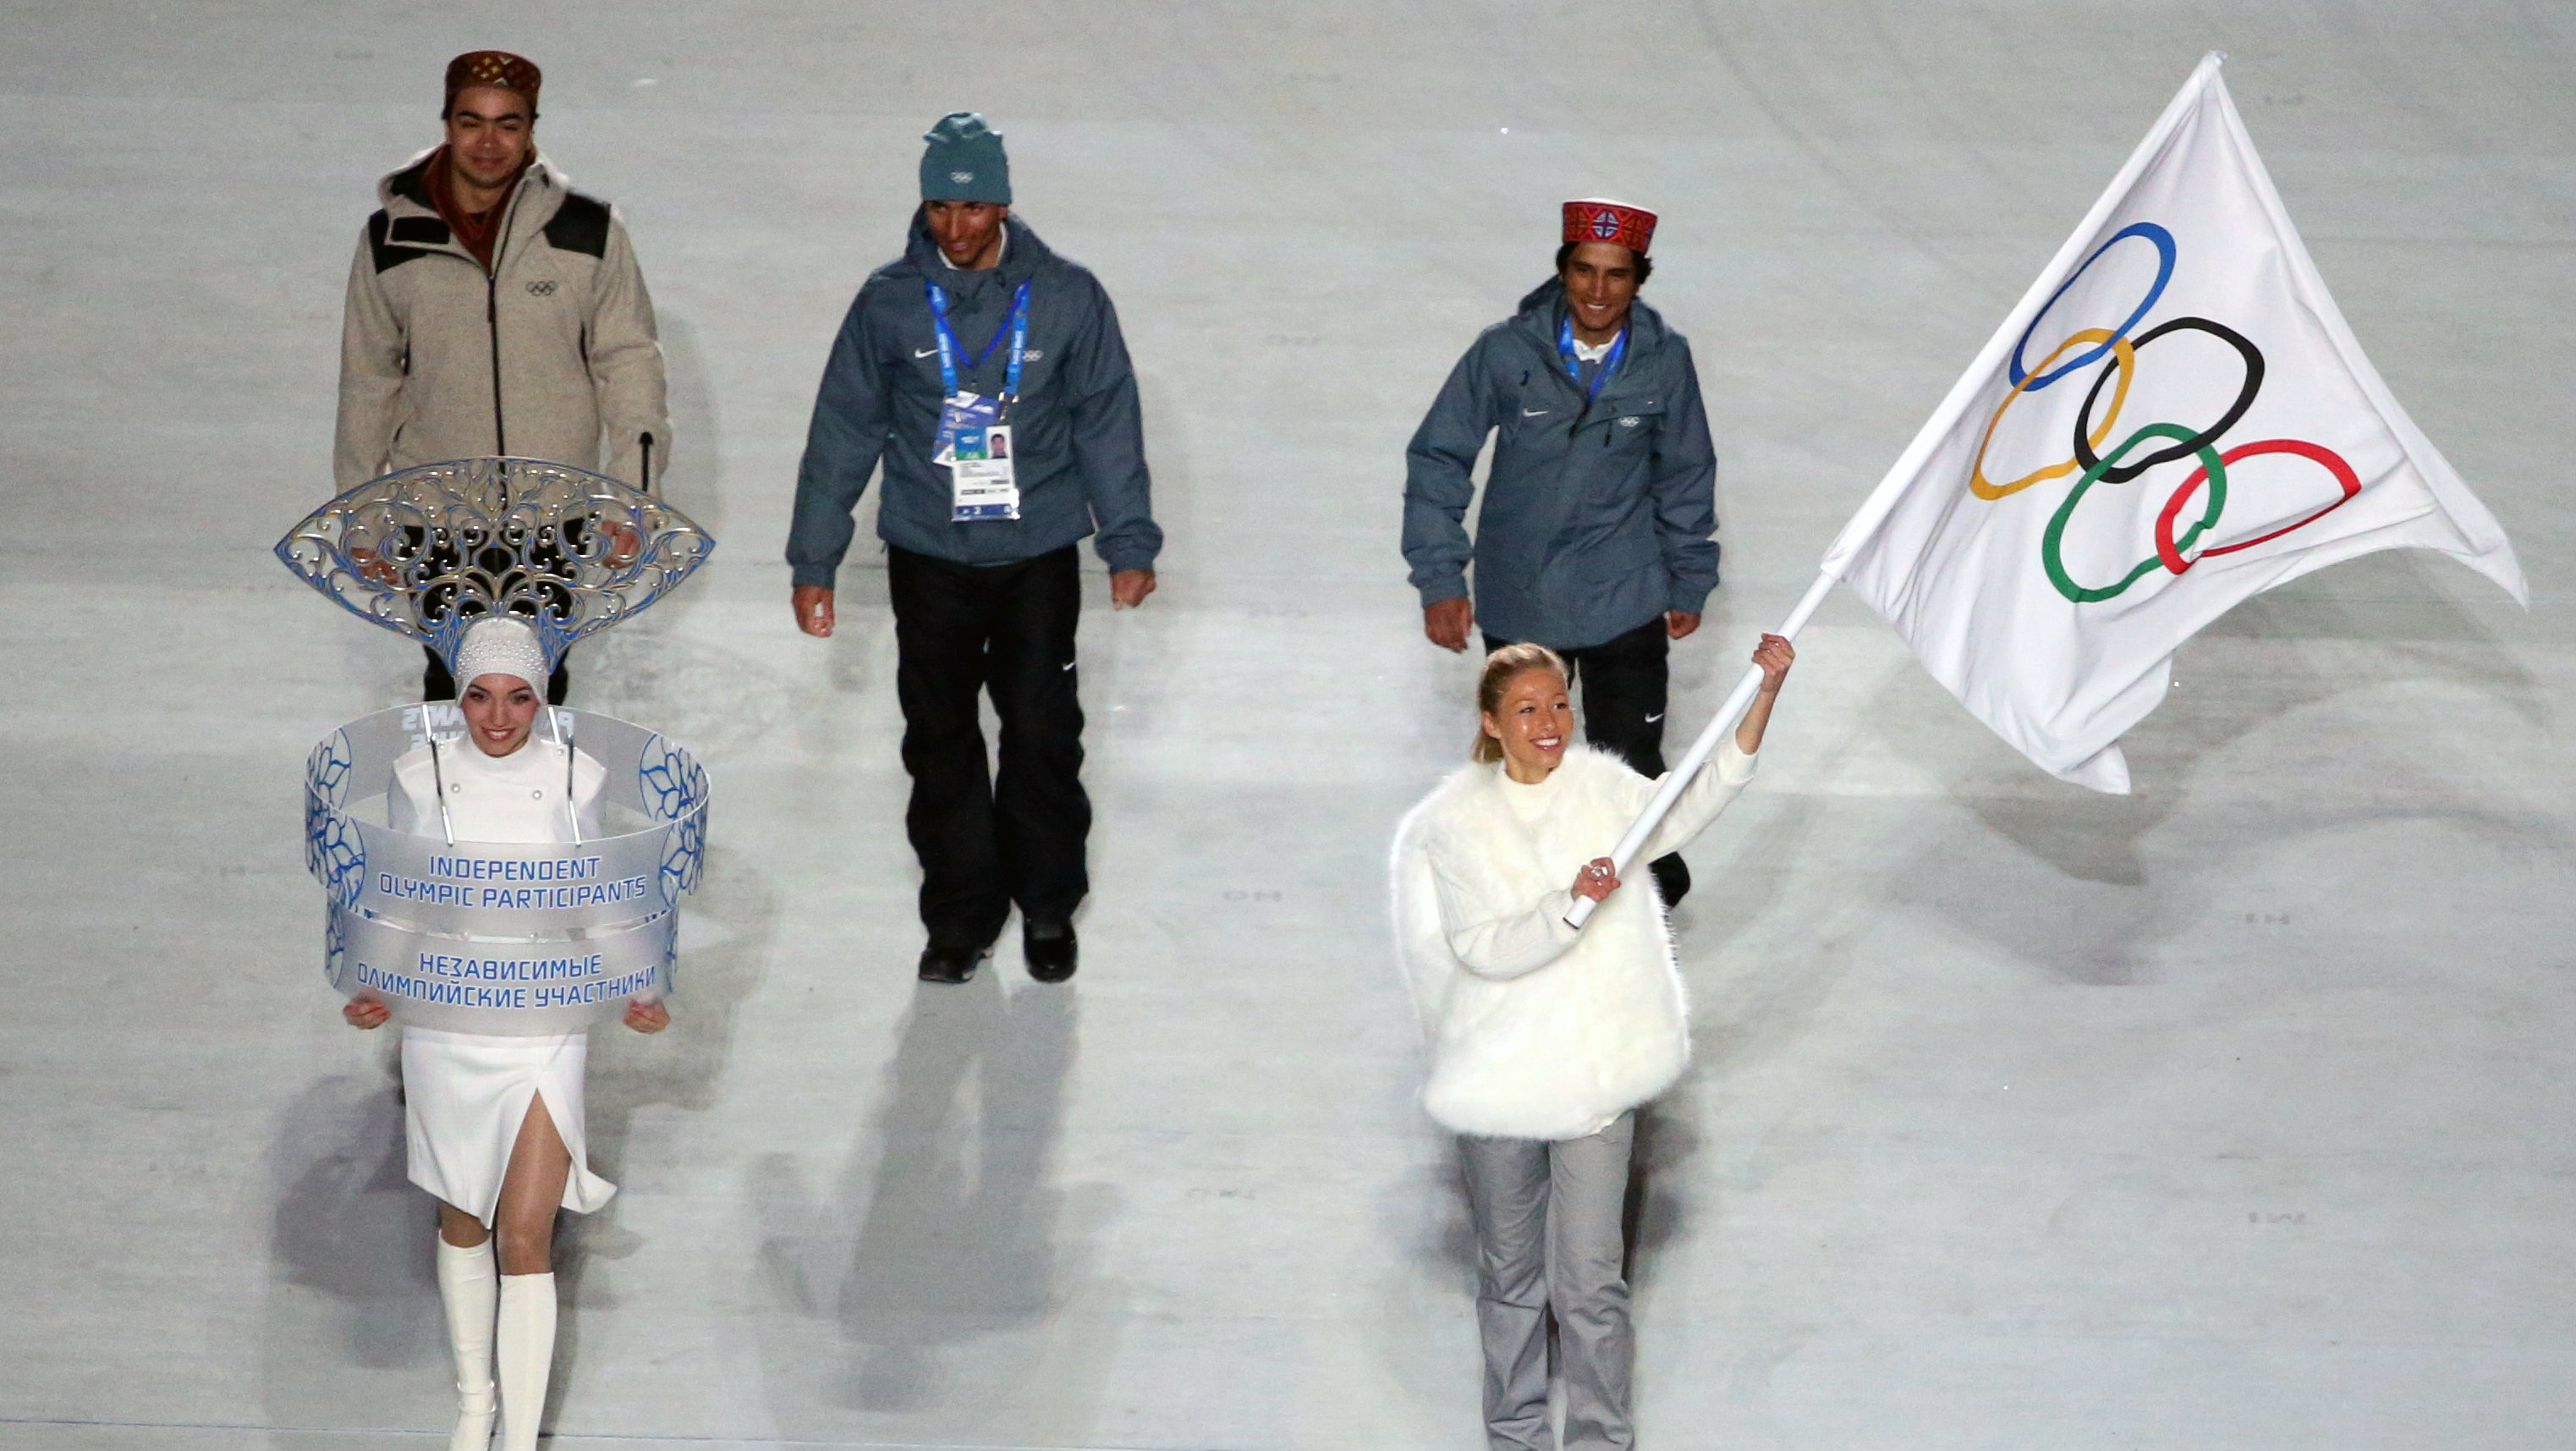 ndian athletes starting as Independent Olympic Participants enter the stadium during the Opening Ceremony of the Sochi 2014 Olympic Games at the Fisht Olympic Stadium, Sochi, Russia, 07 February 2014.